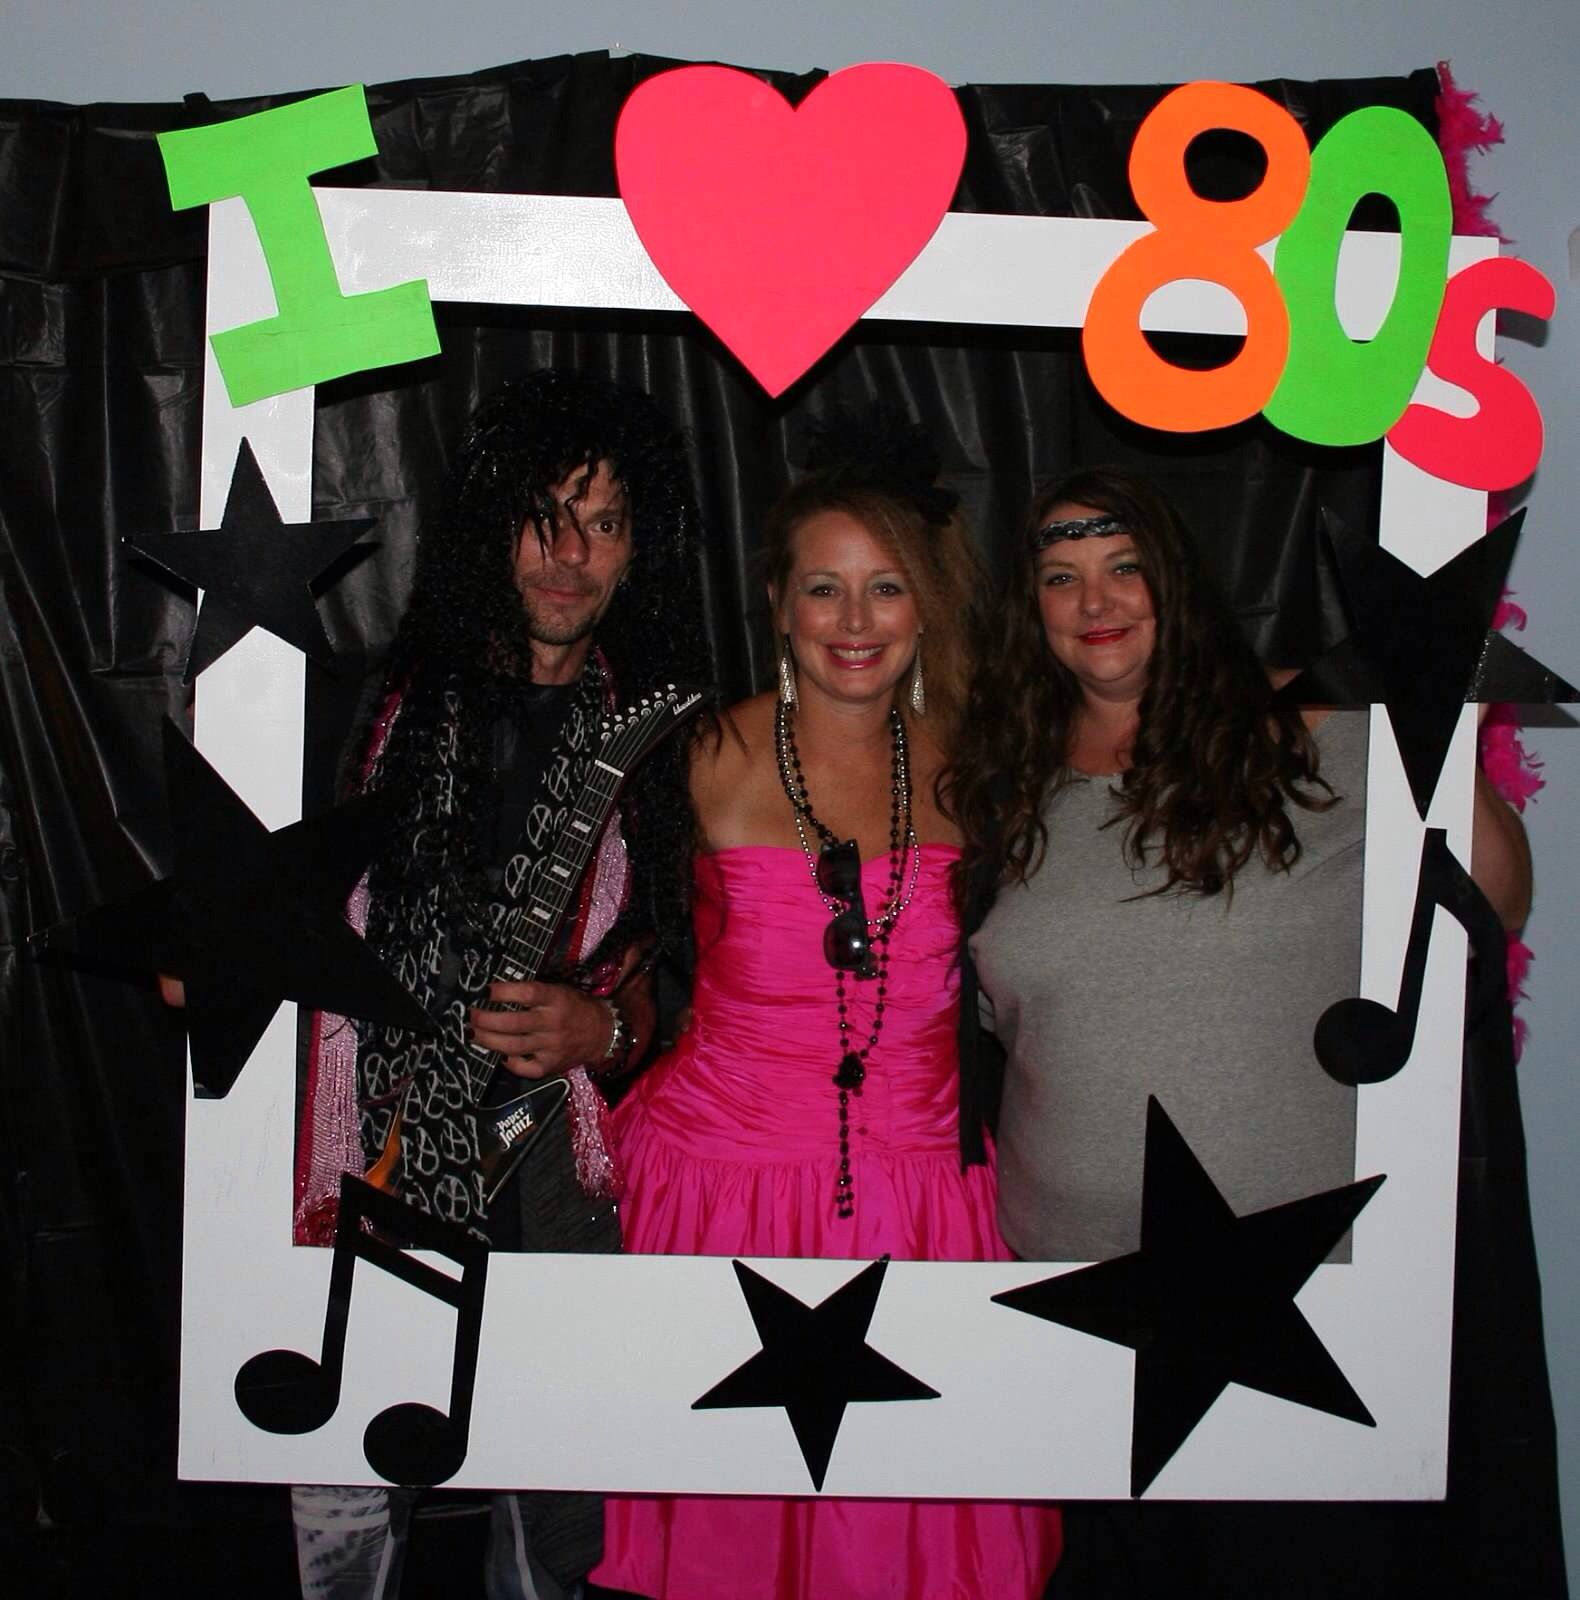 80 39 s party polaroid photo booth 80 39 s party pinterest polaroid photo booths polaroid. Black Bedroom Furniture Sets. Home Design Ideas